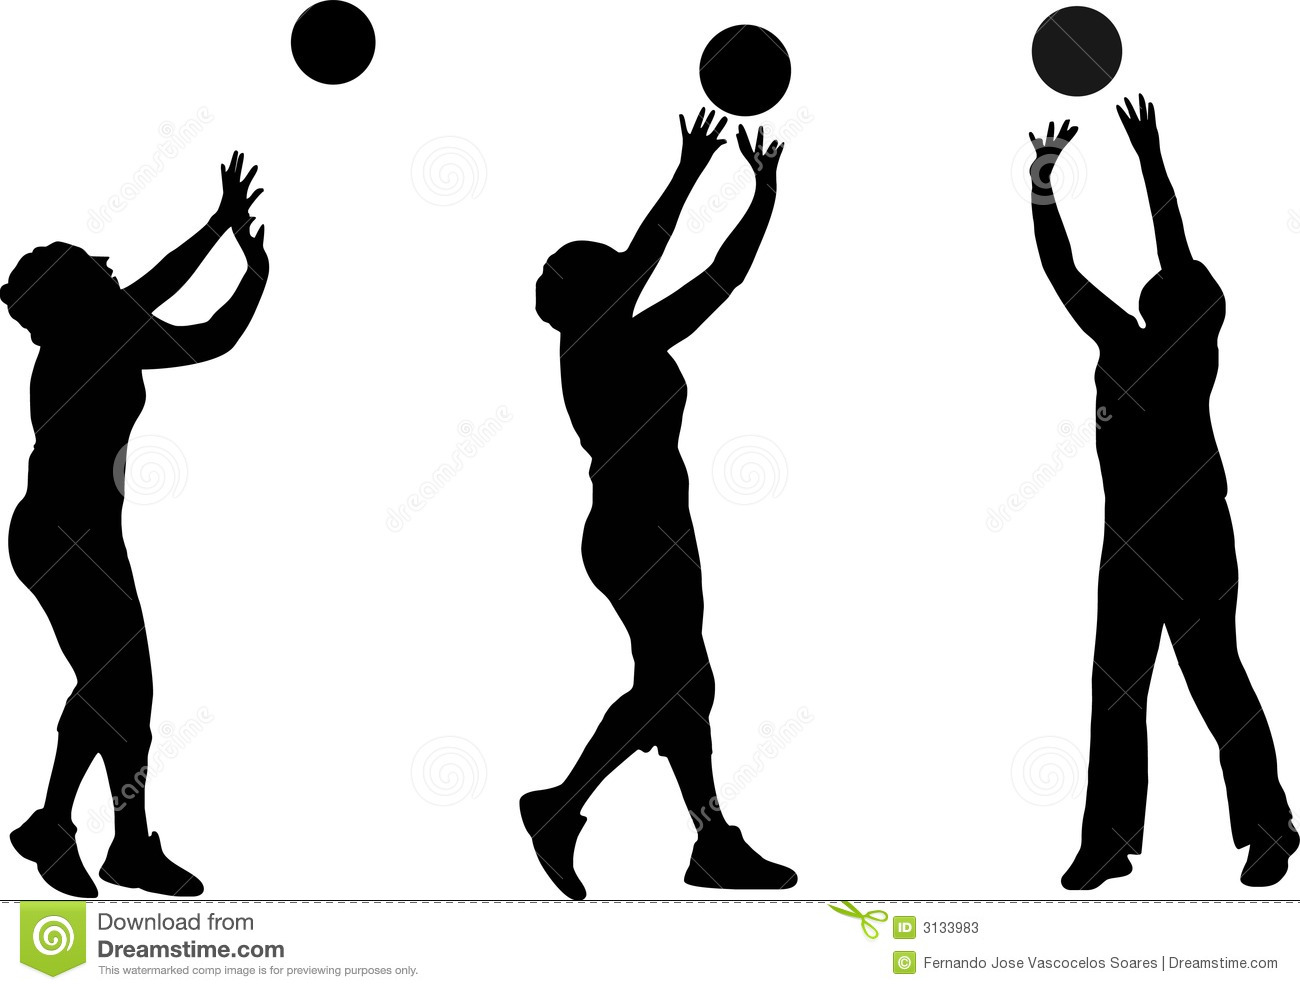 Illustration Abstract Volleyball Player Silhouette: Volleyball Silhouettes Stock Photos